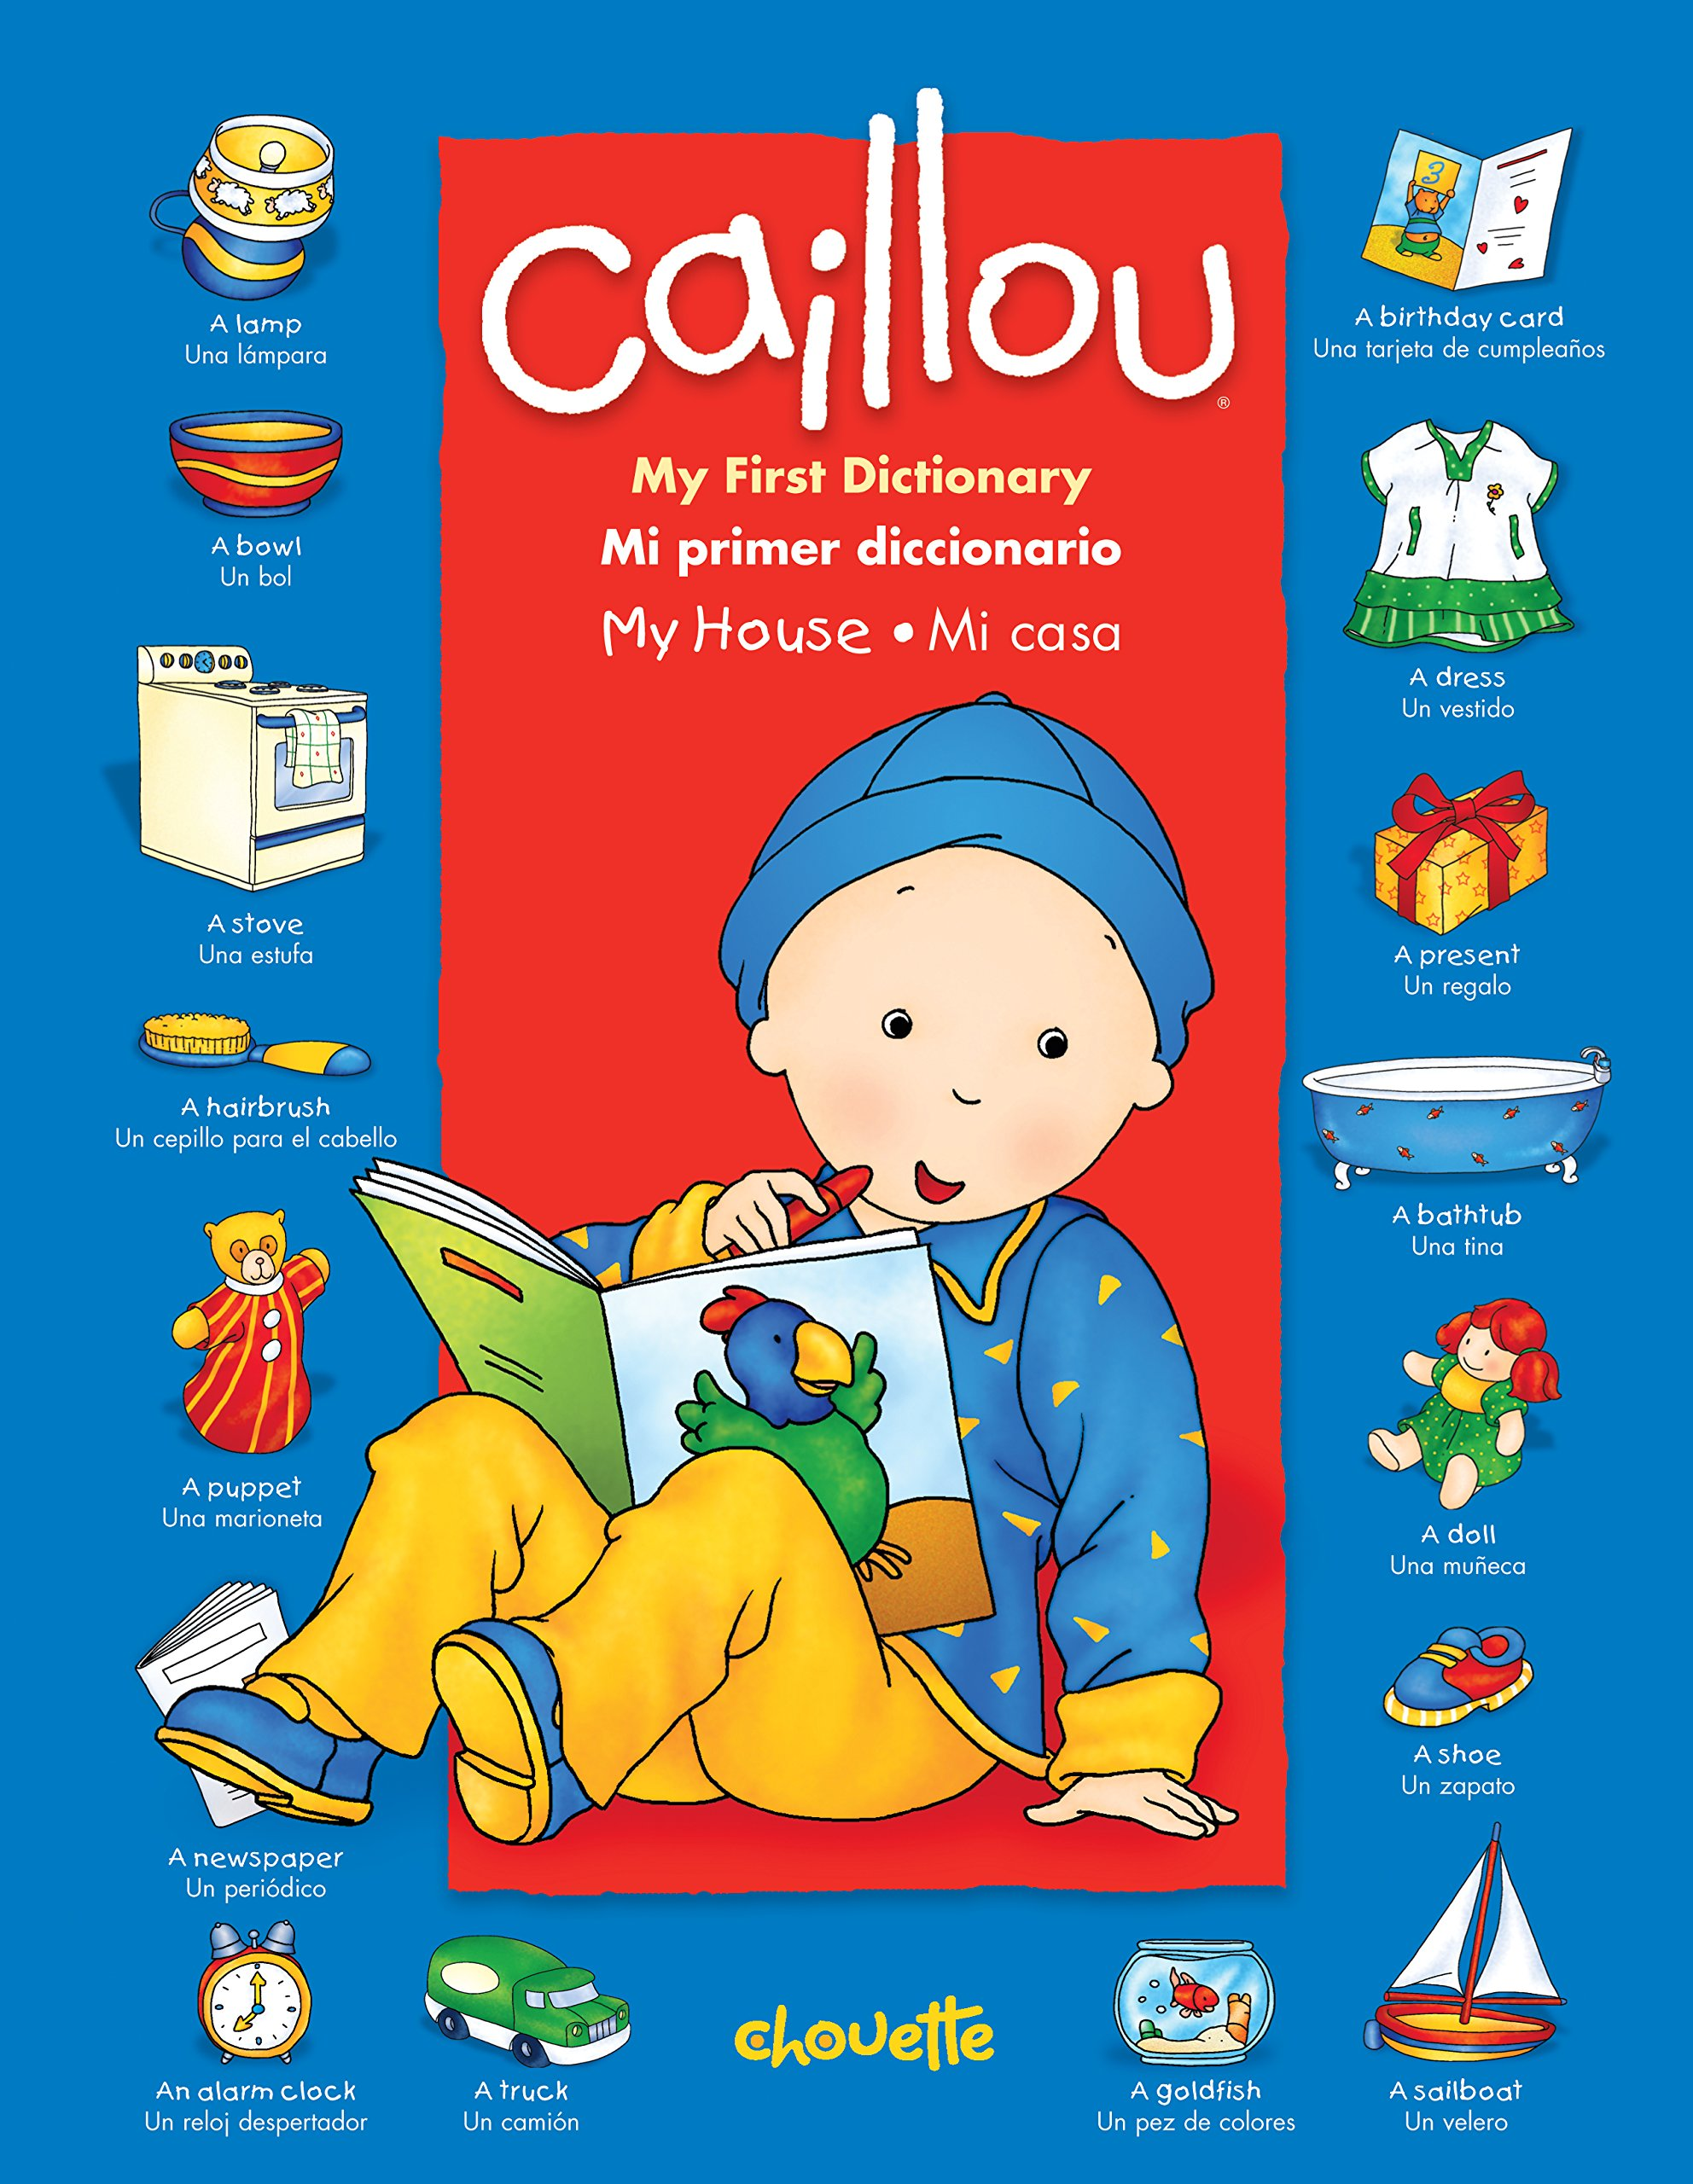 Amazon.com: Caillou: My First Dictionary / Mi primer ...